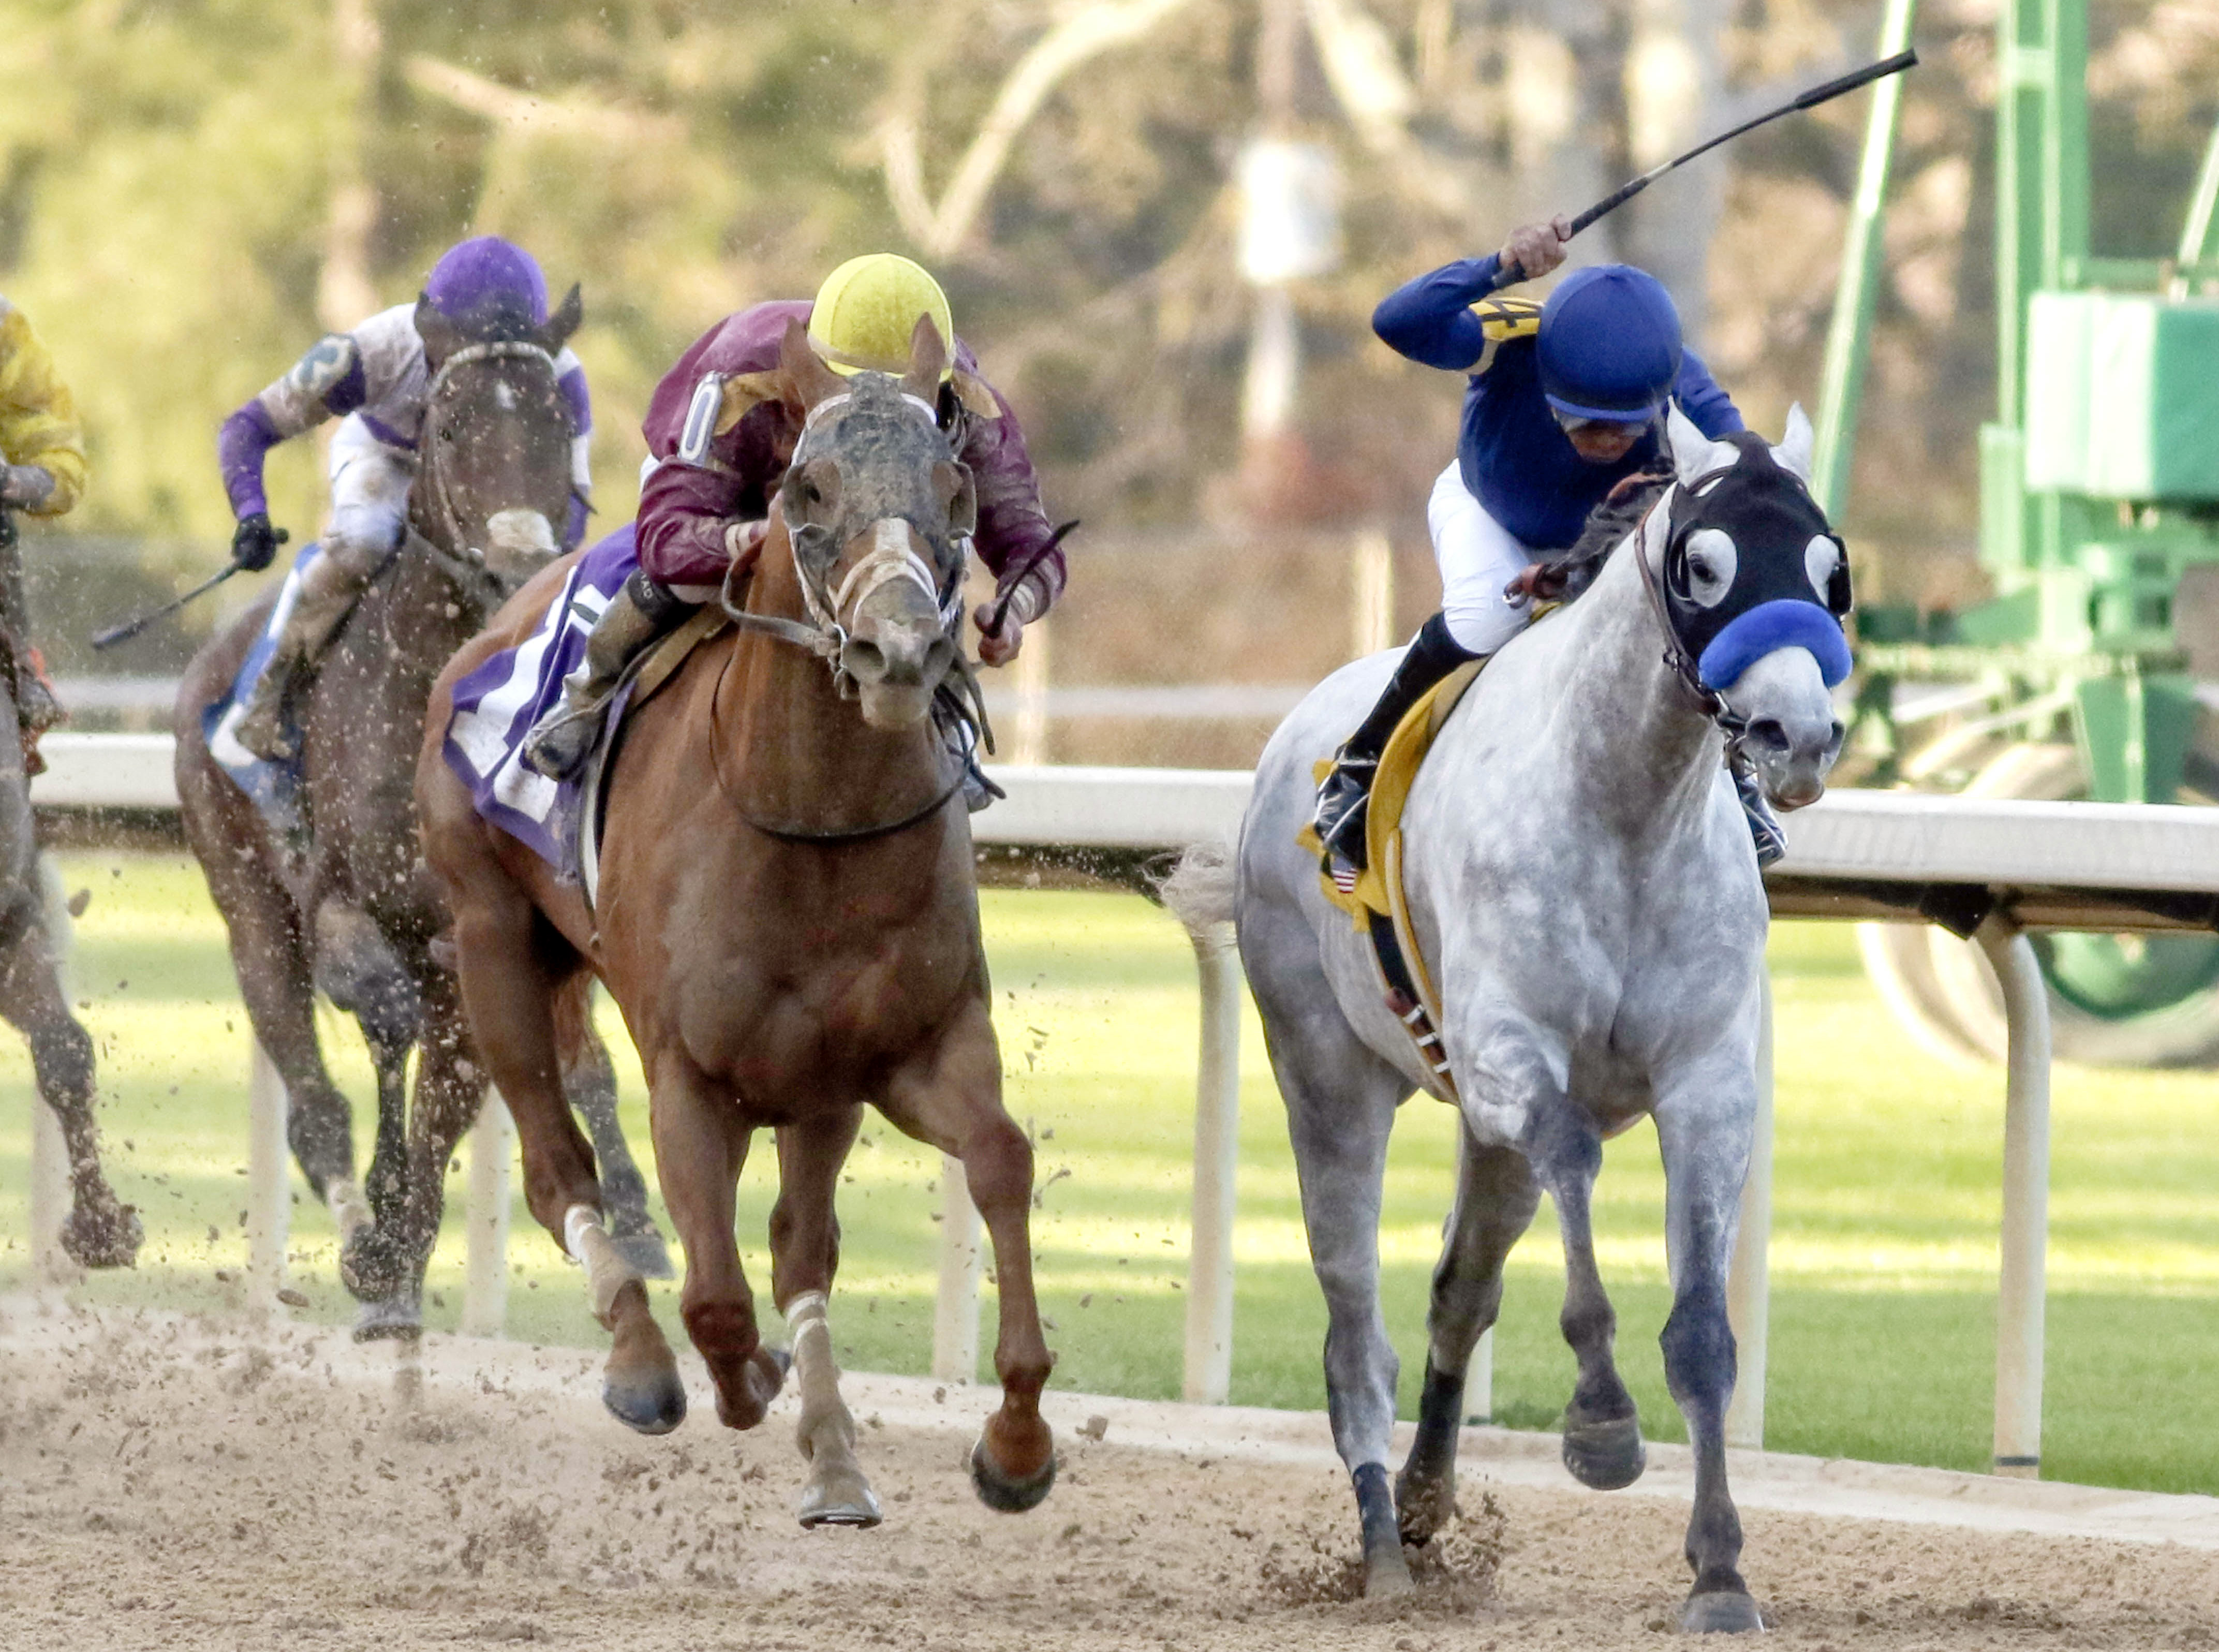 FILE - In this March 19, 2016, file photo, Cupid and jockey Martin Garcia, right, battles Whitmore and jockey Irad Ortiz, Jr., center, down the stretch to win the Rebel Stakes horse race at Oaklawn Park in Hot Springs, Ark. Win or lose the Arkansas Derby,